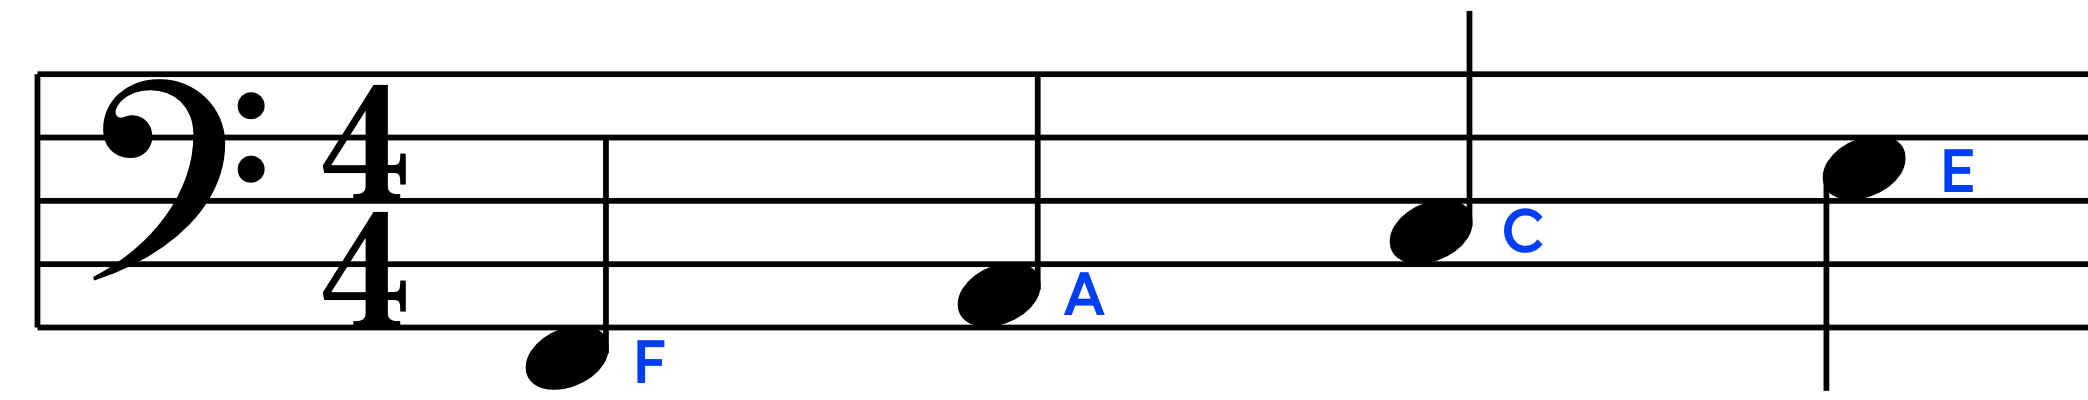 reading-sheet-music-cheat-codes-in-post-02